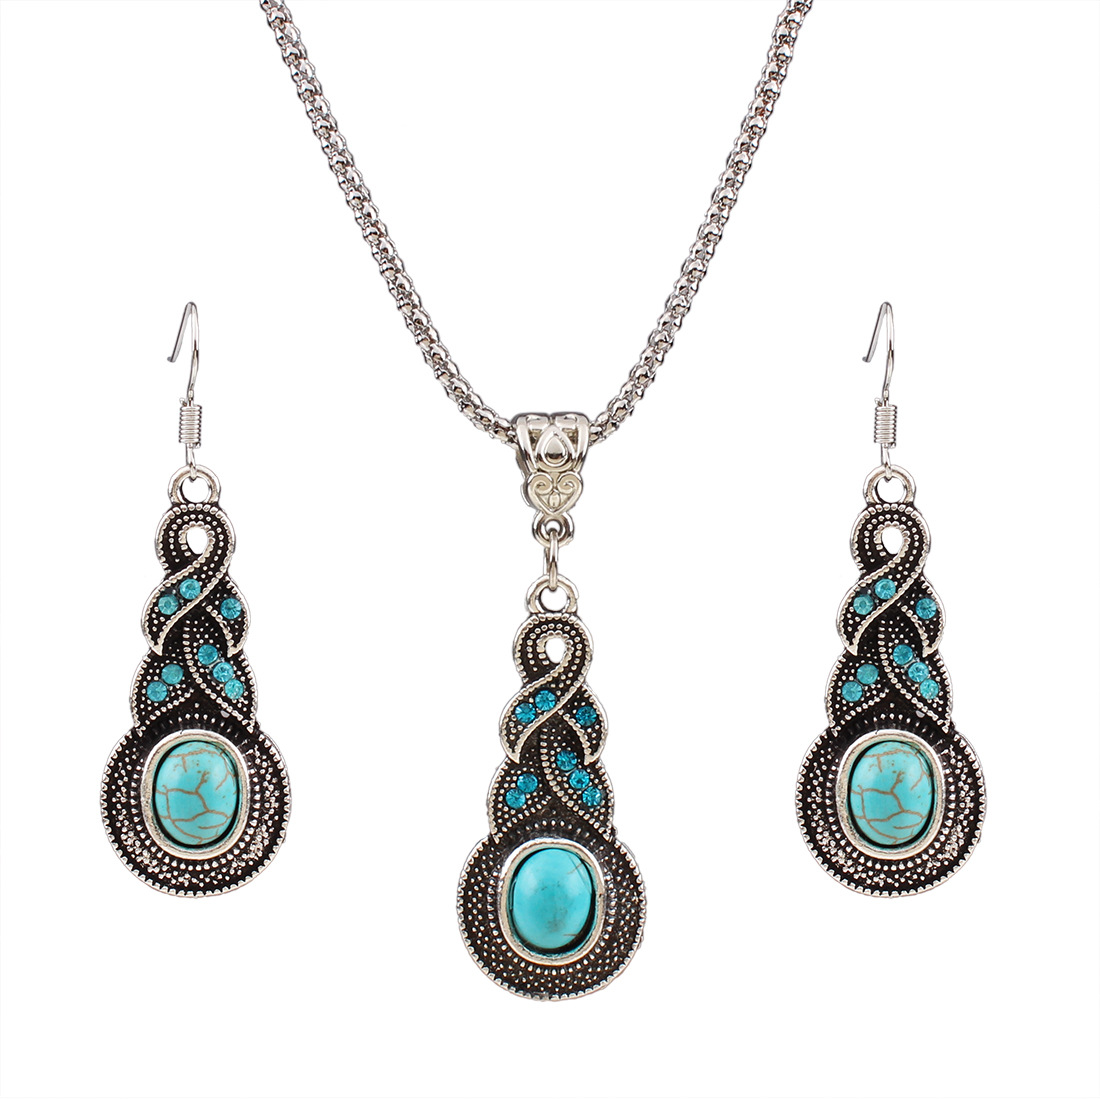 Top Sale Women Necklace silver plated with earrings jewelry sets for women party gift chokers statement neckalces sets